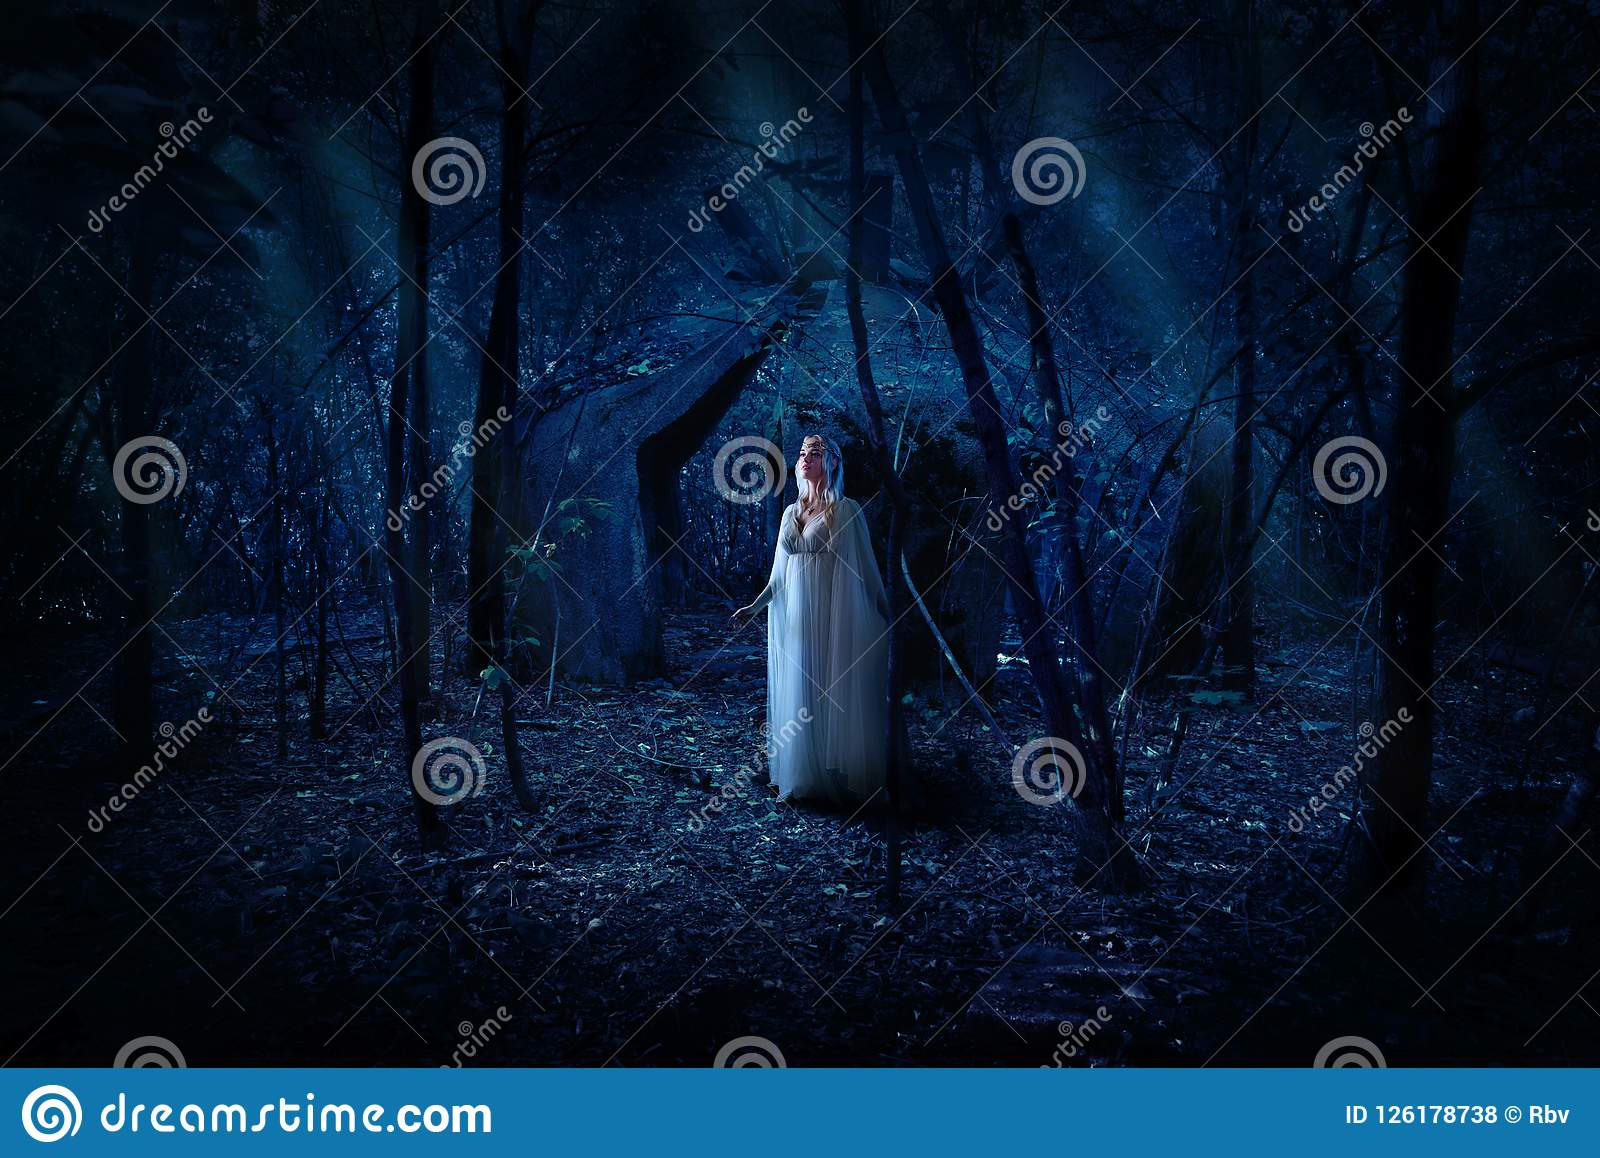 elven girl in night forest stock photo image of creature 126178738